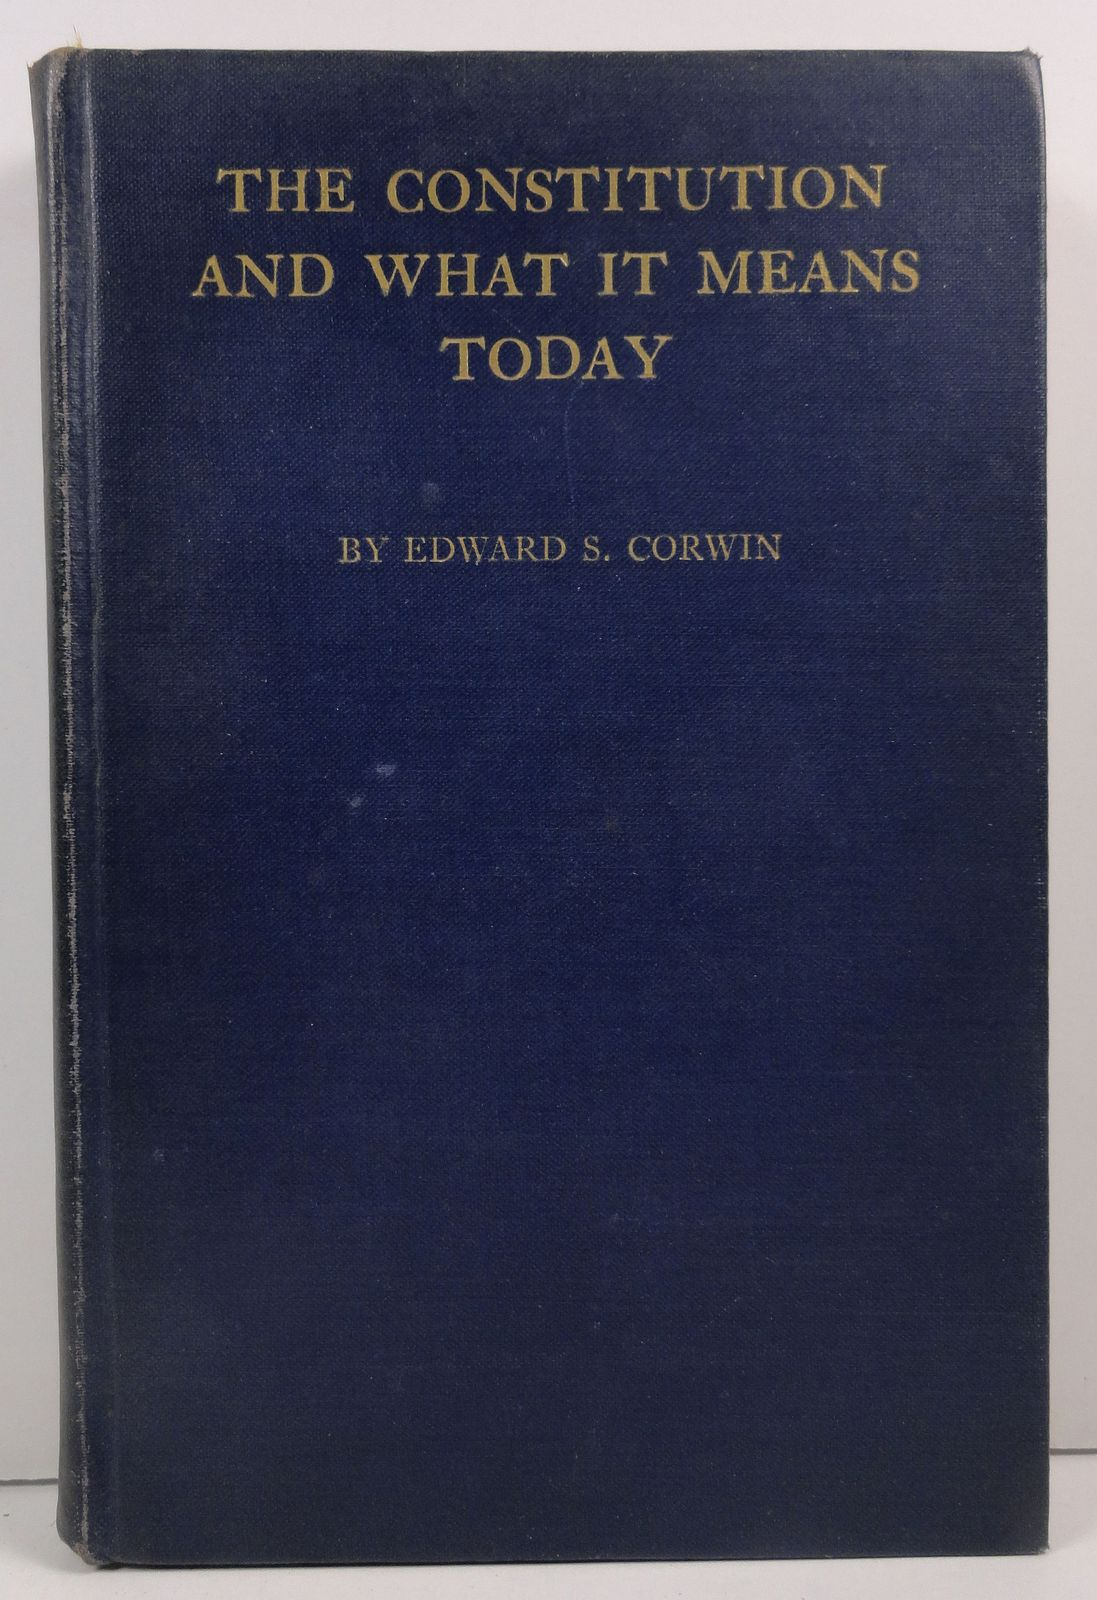 The Constitution and What it Means Today by Edward S. Corwin